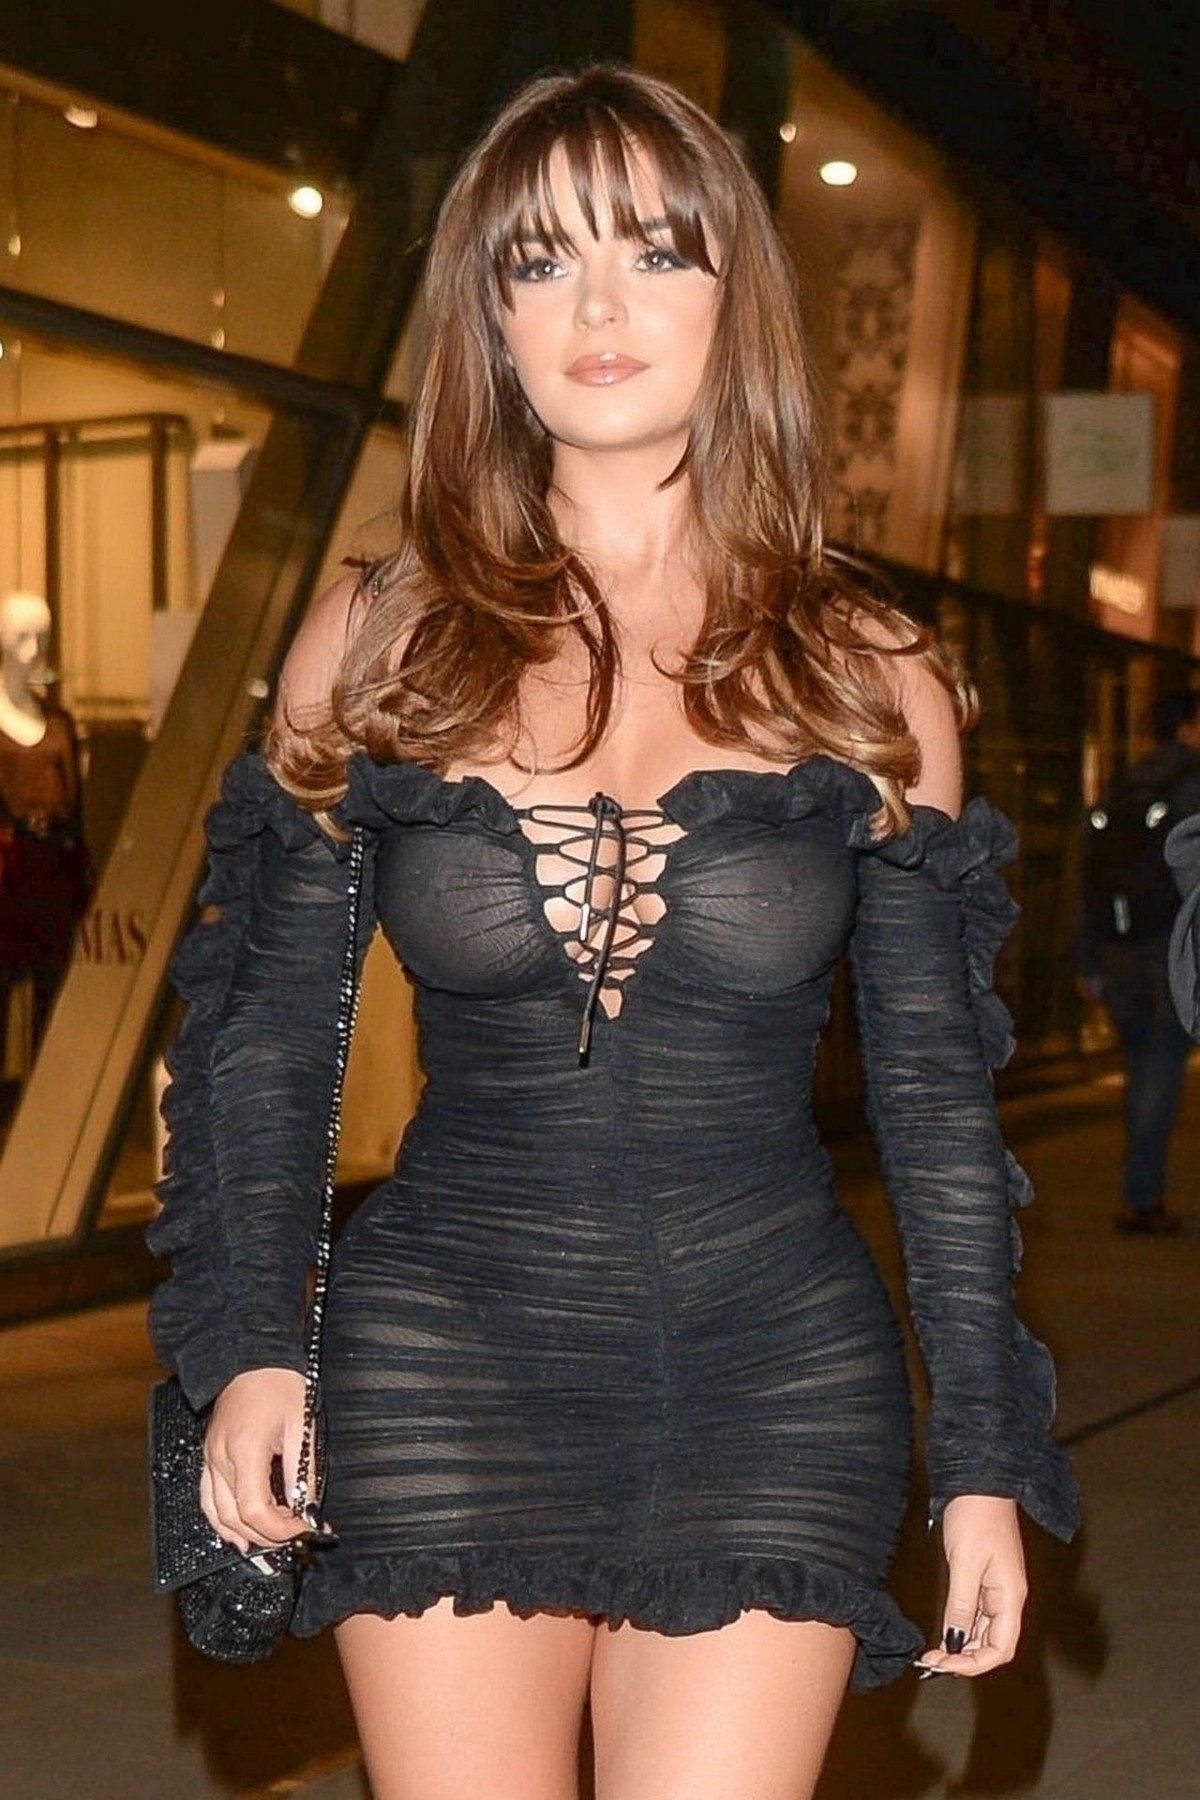 Demi Rose Mawby seen in Stylish Short Dress at The Skinny Tan Choc Range launch party in Madison, London 2019/11/19 16